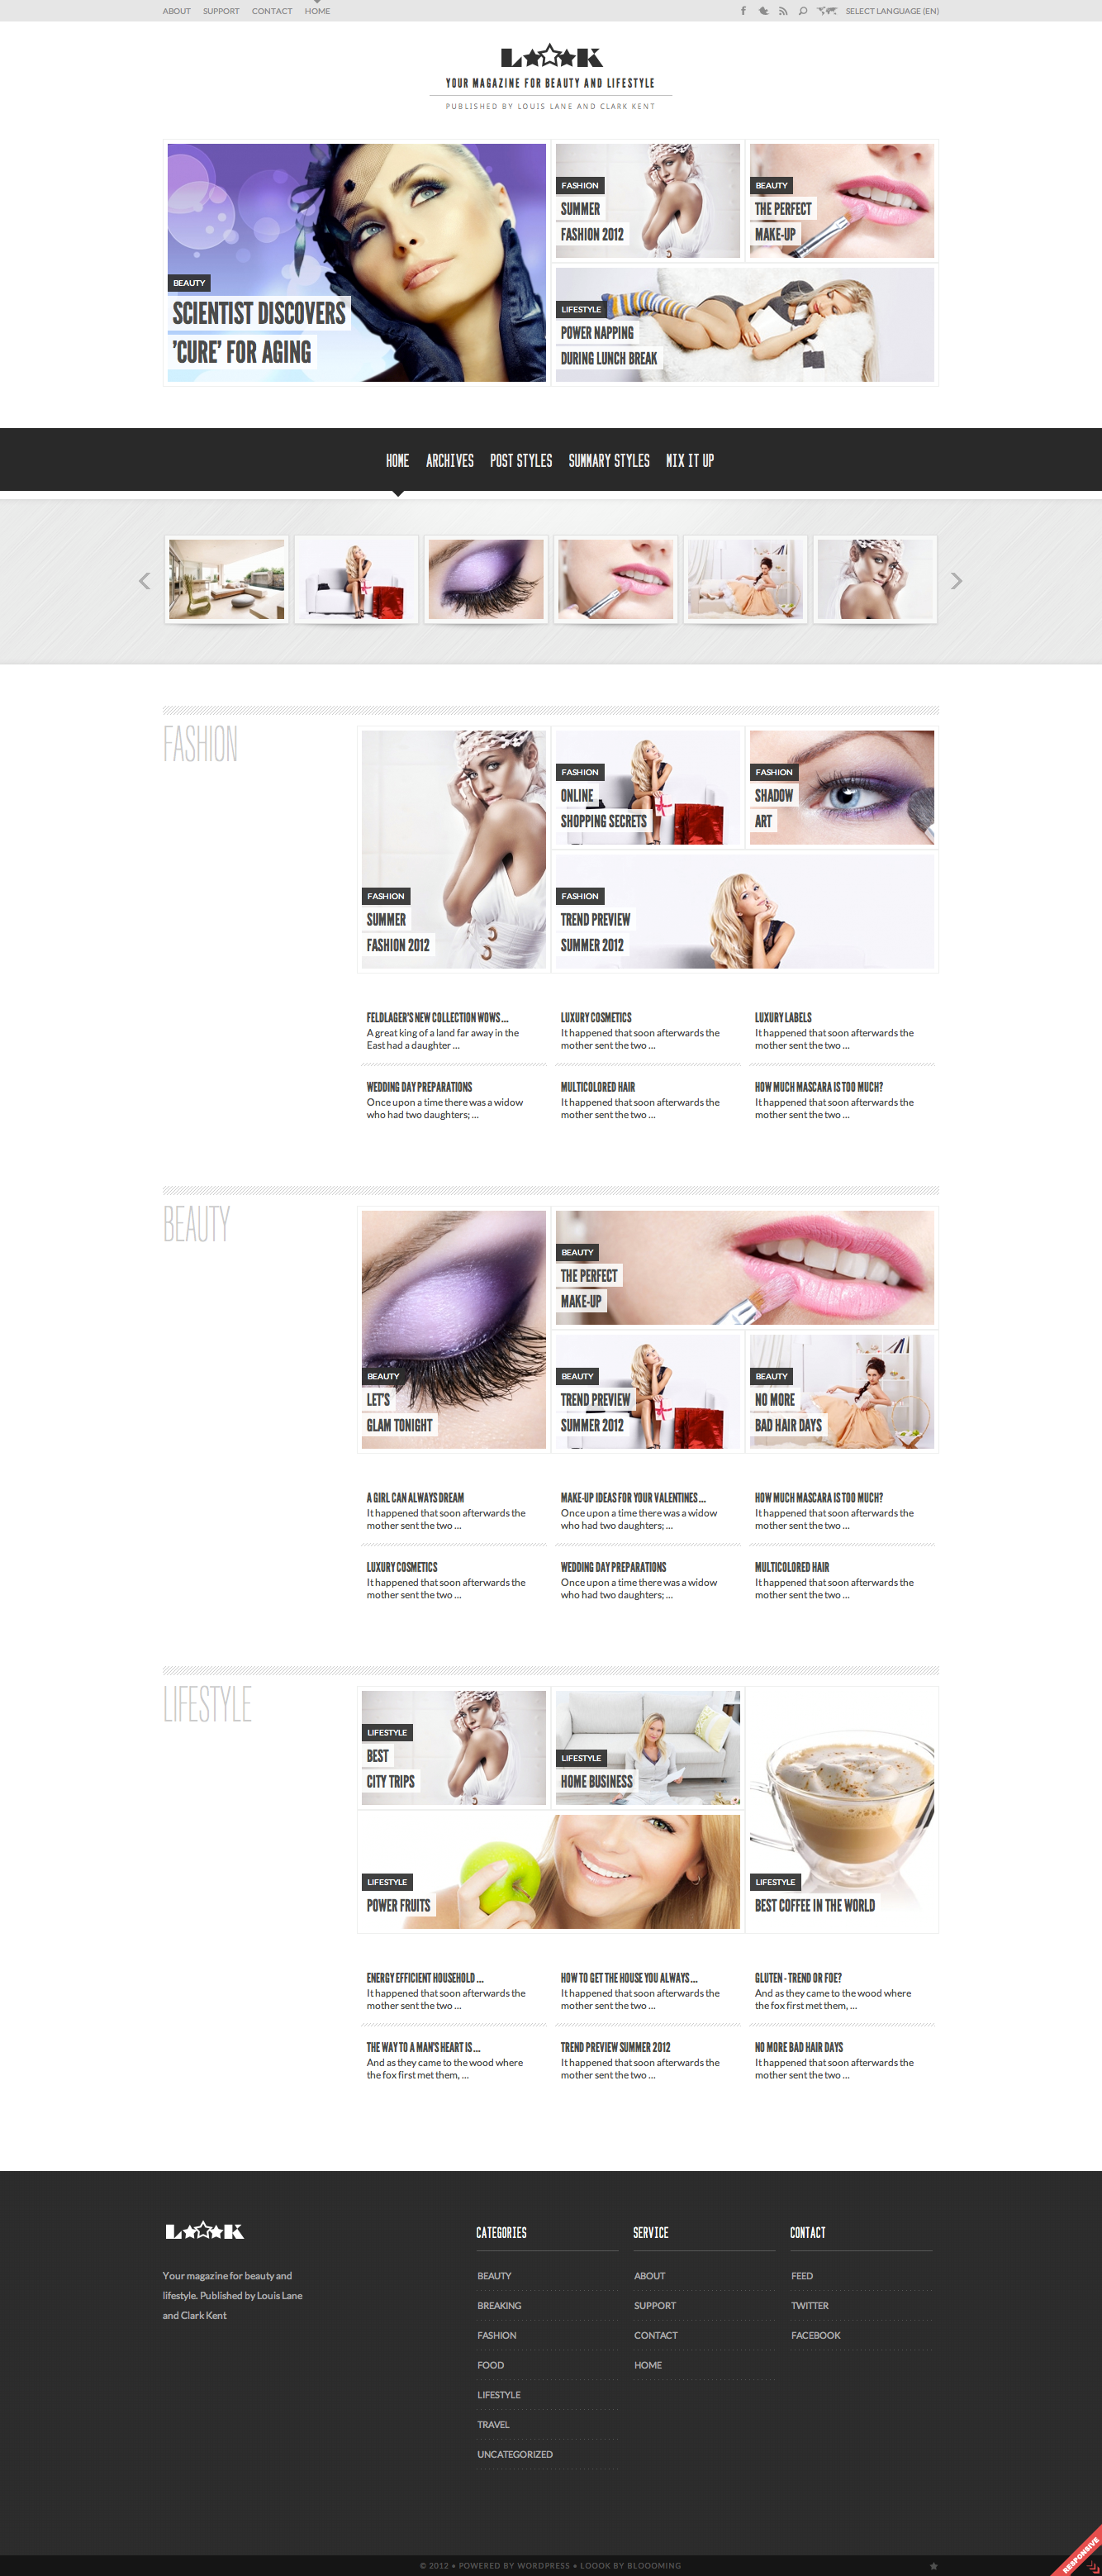 http://1.s3.envato.com/files/57273835/loook_screenshots/2_frontpage.png